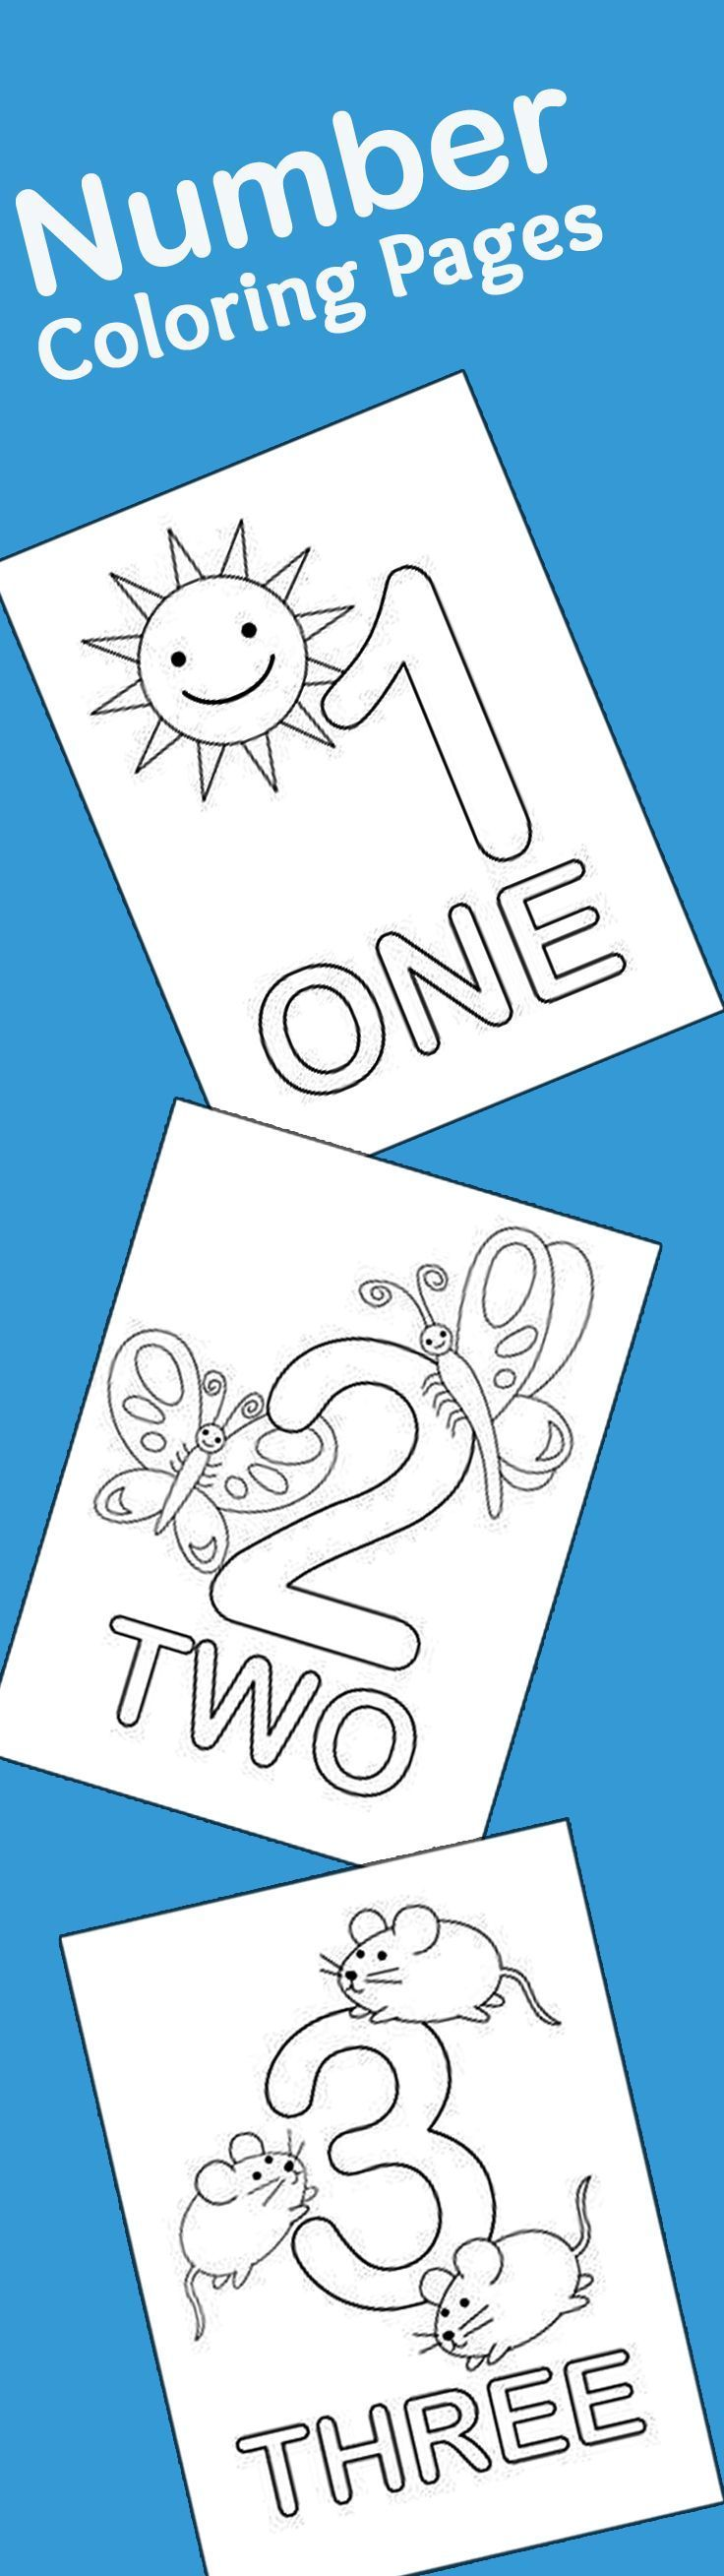 Free coloring pages that you color online - Top 21 Free Printable Number Coloring Pages Online